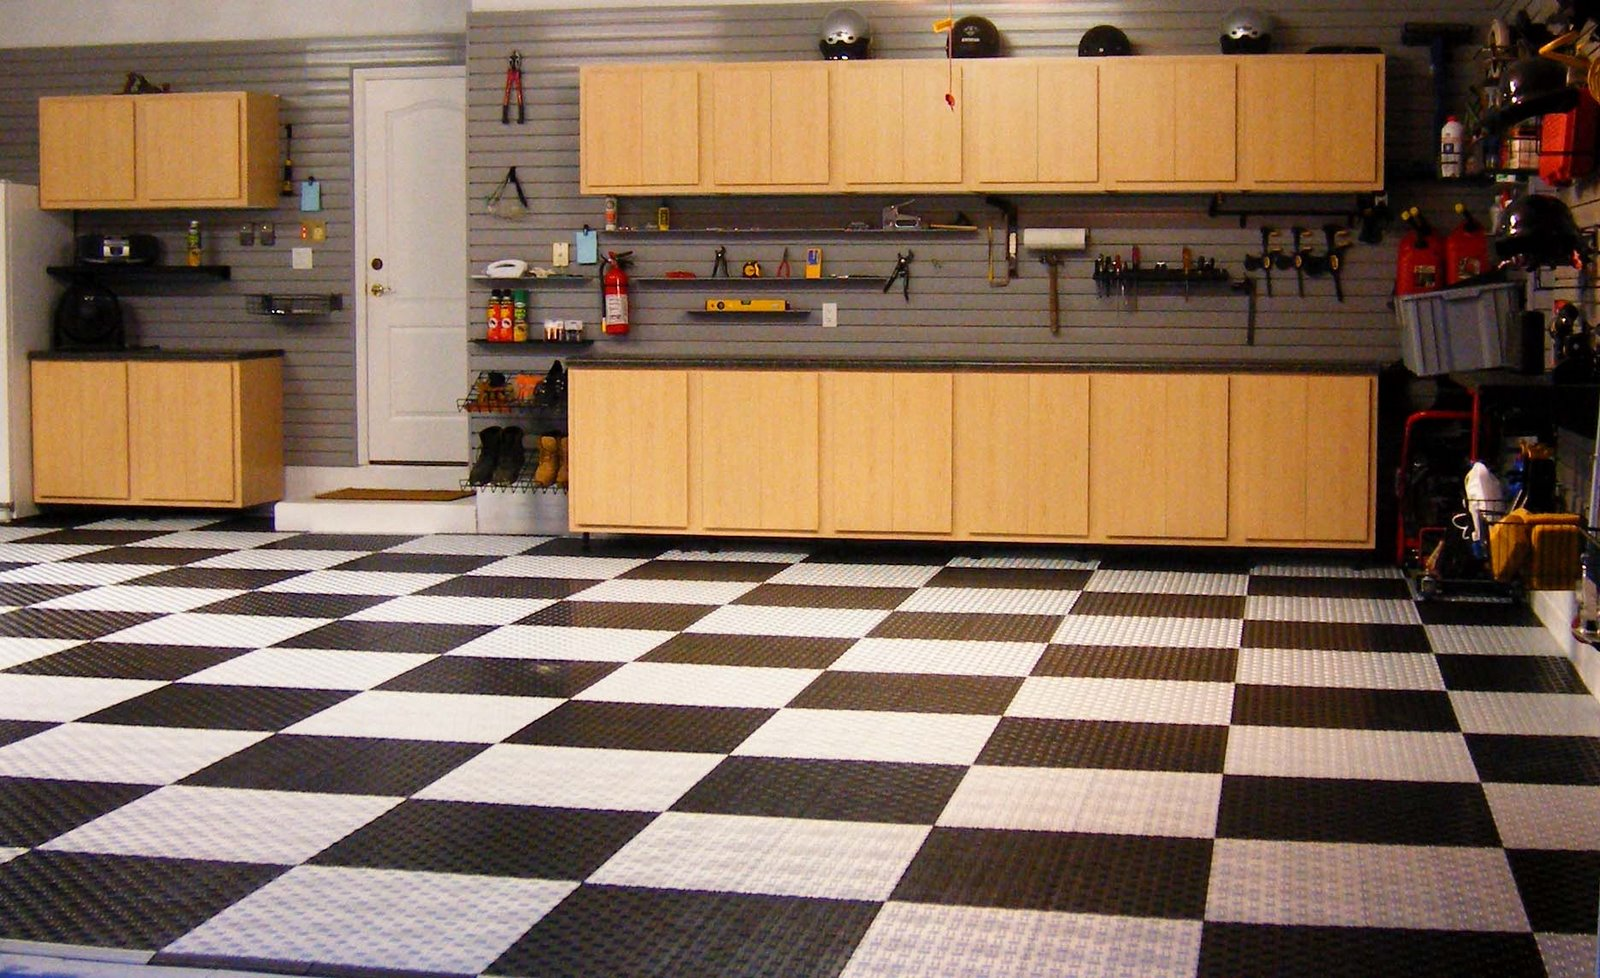 Michael blanchard handyman services for Garge floor